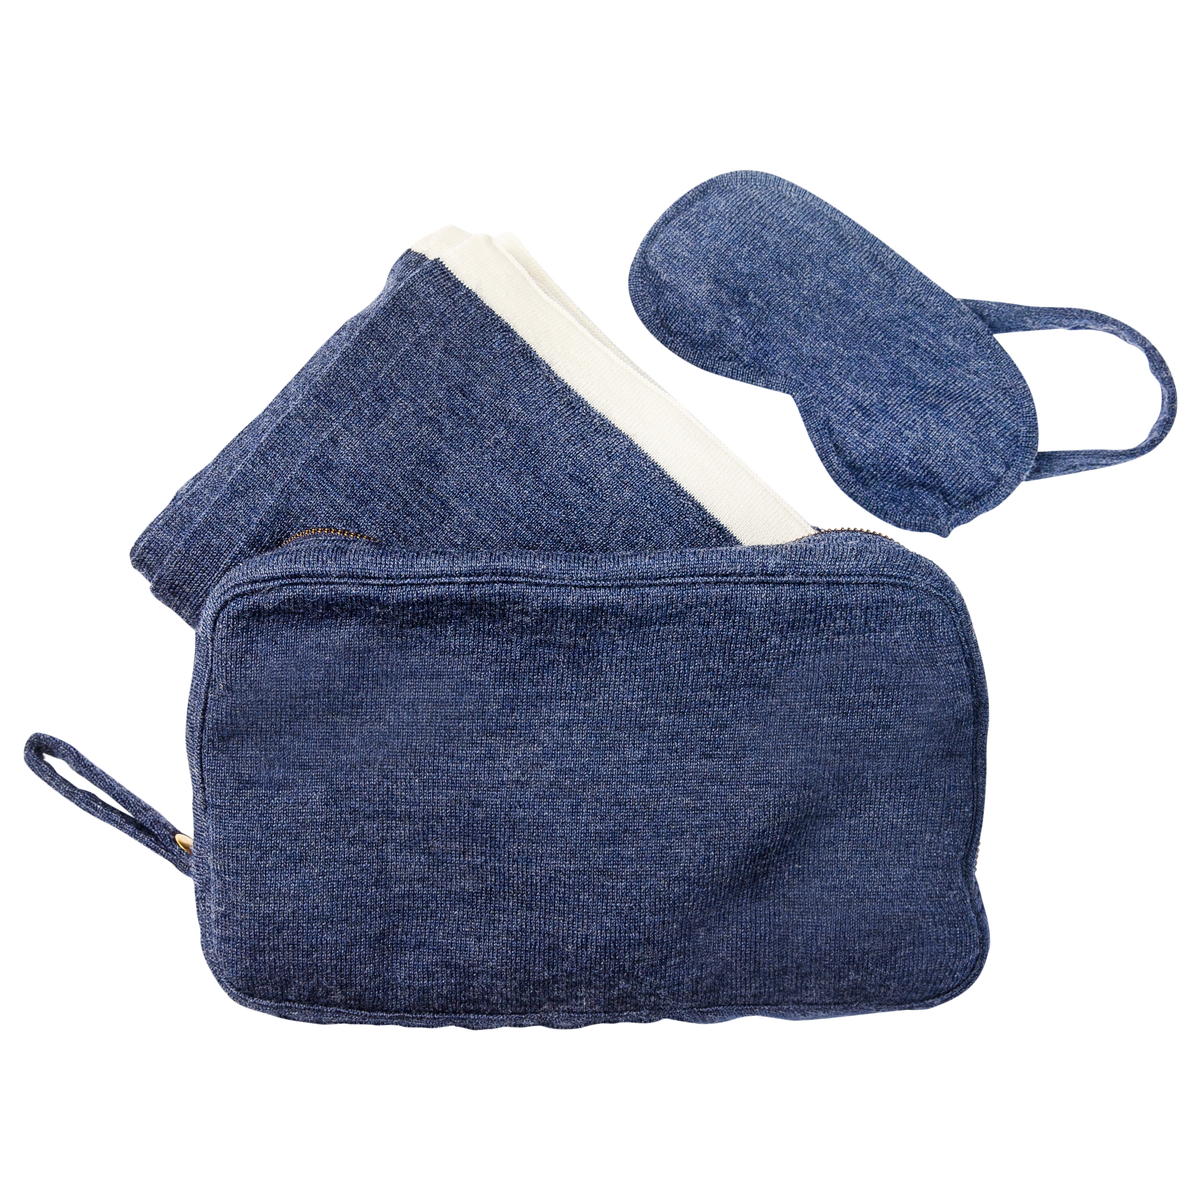 Merino Wool Travel Set in Navy | Eye Cover and Blanket | Skylark+Owl Linen Co.